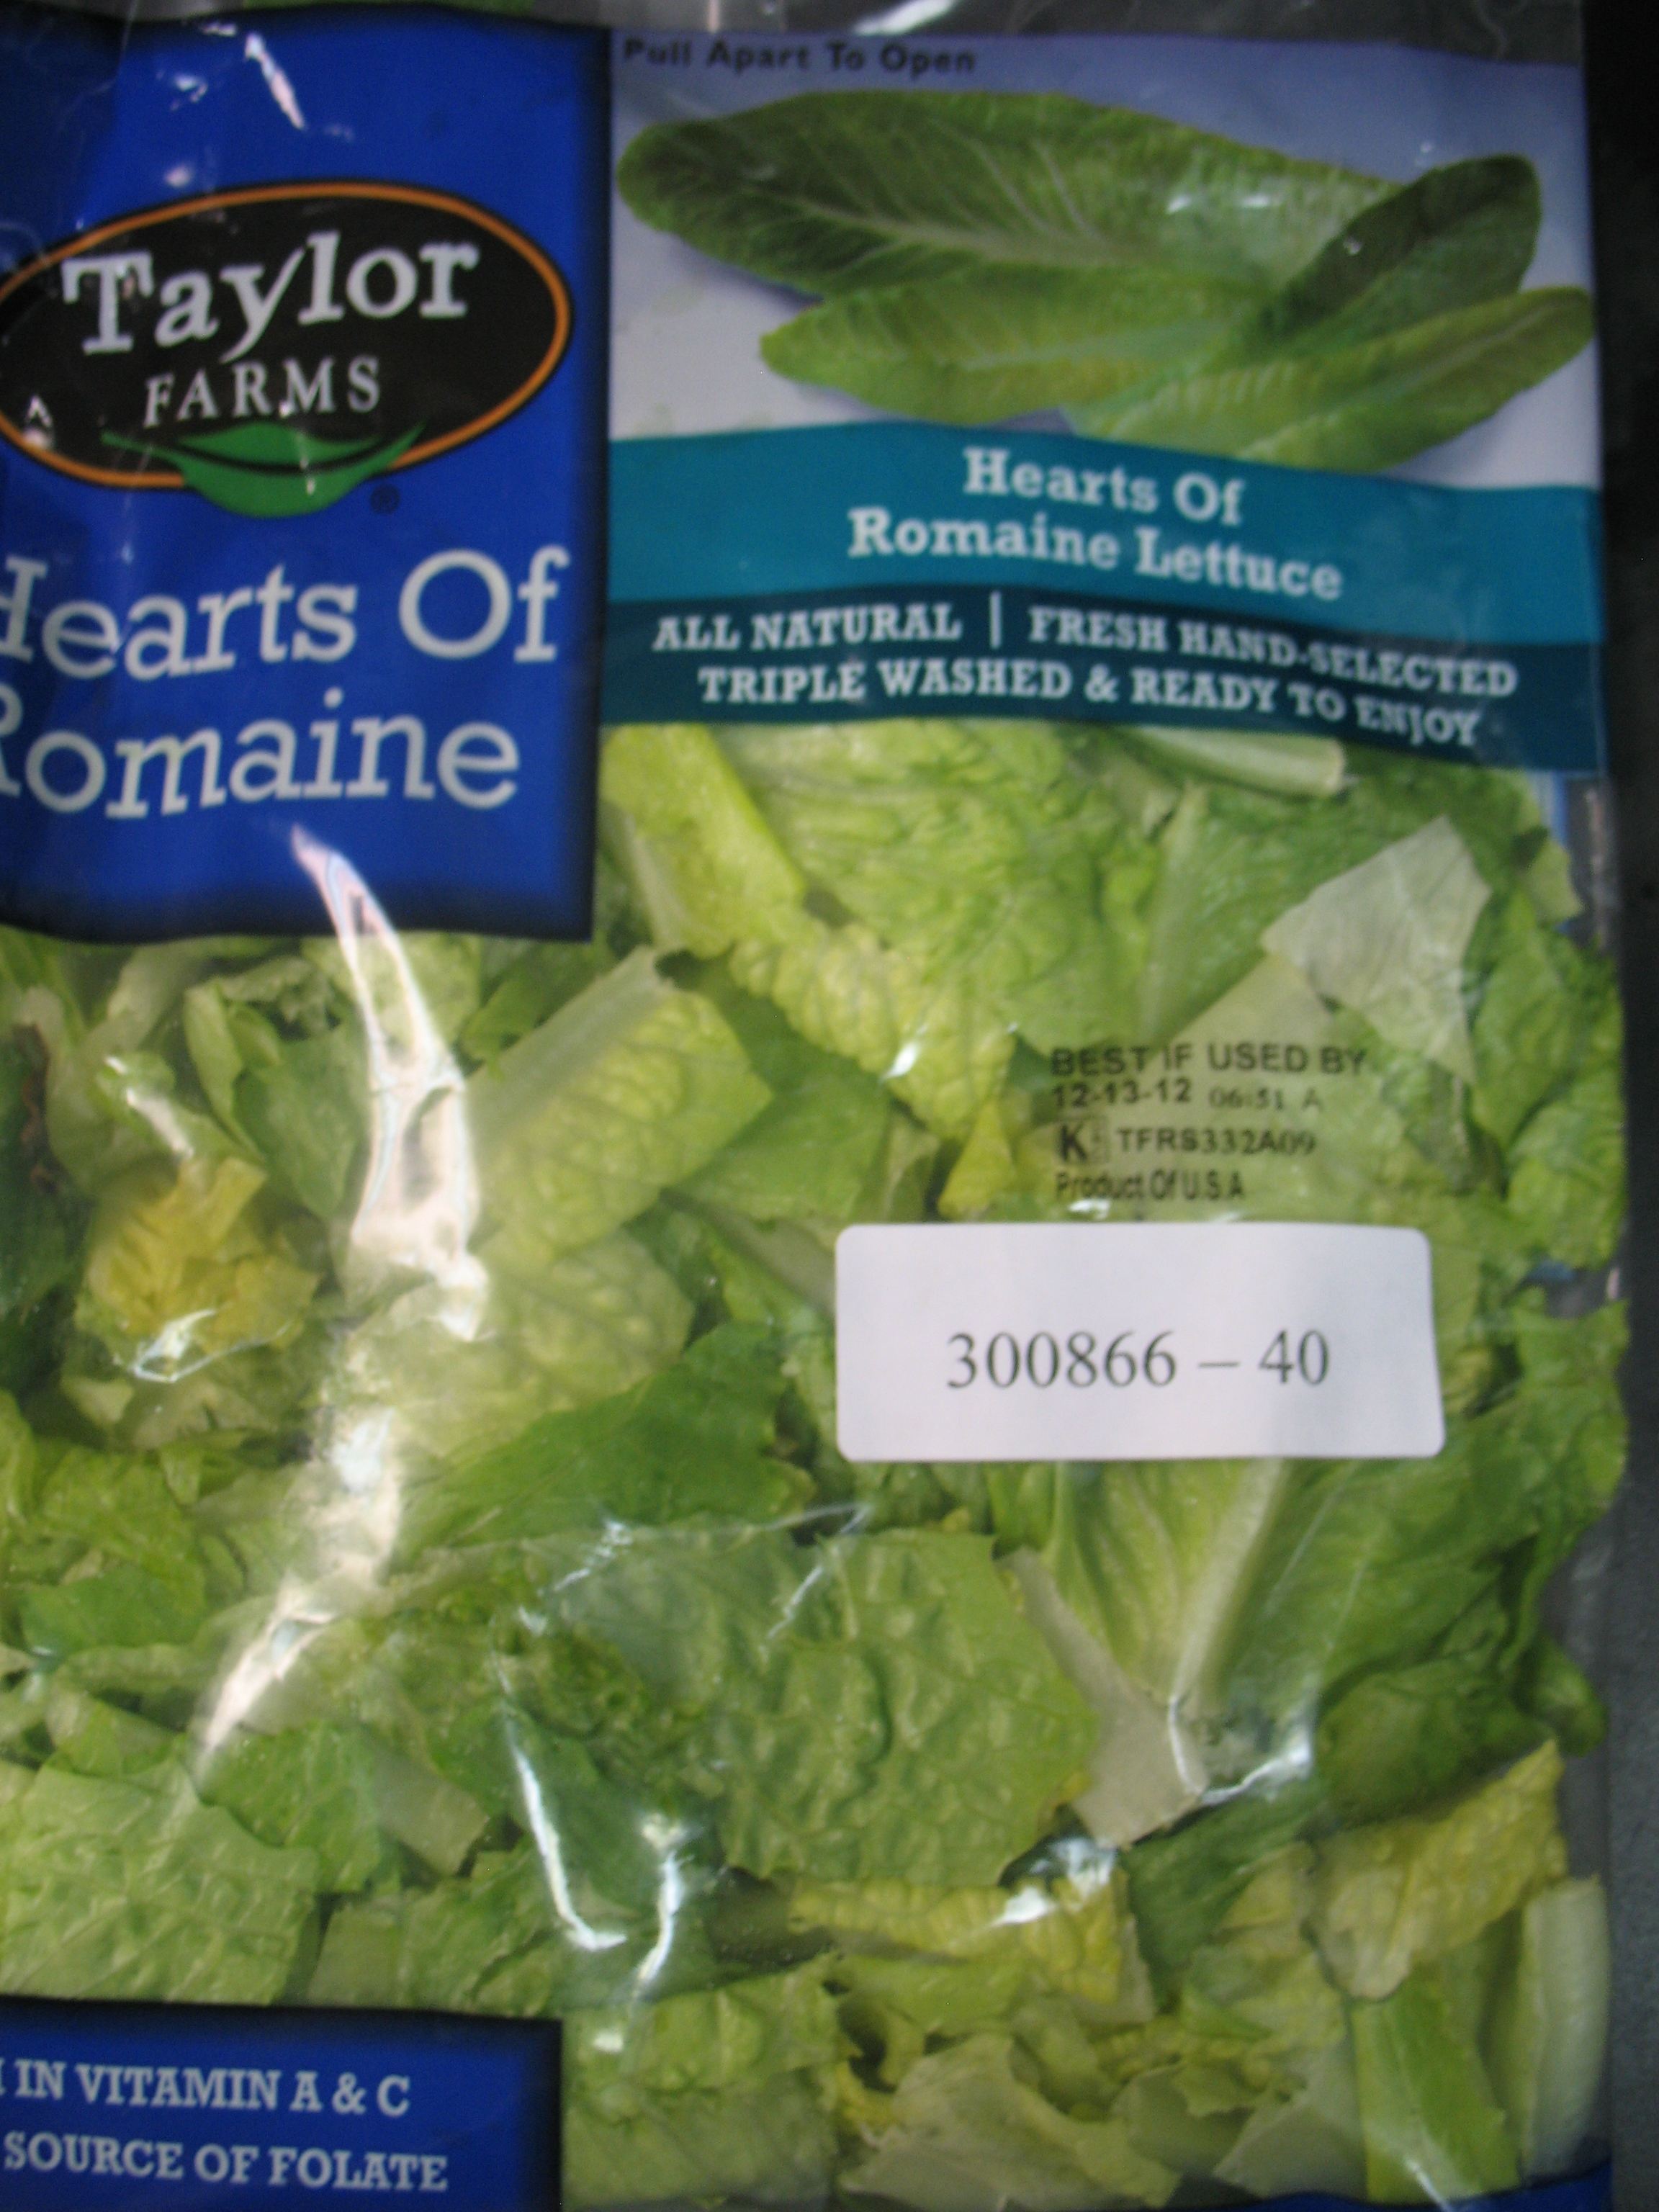 Taylor Farms Hearts Of Romaine Recalled Due To Potential